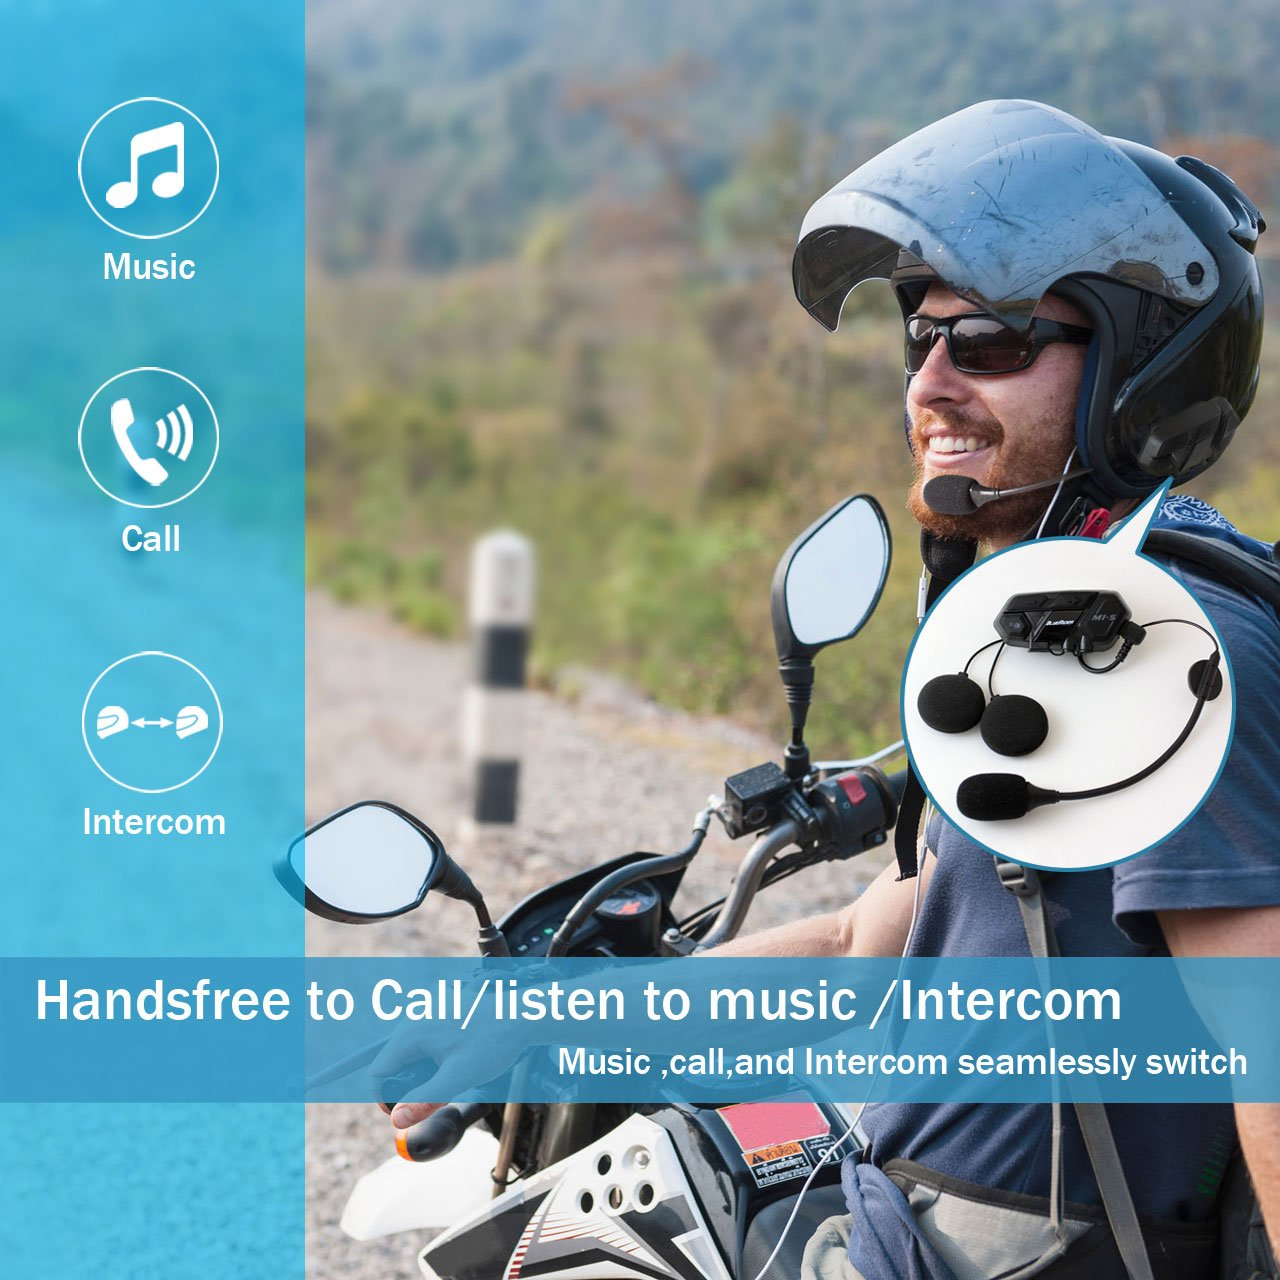 Motorcycle Bluetooth 4.1 Helmet Headset and Intercom Communication Systems Kit, Supports 8 riders group intercom, Handsfree Calls Voice Command 12hrs with Speakers headphones for Motorbike Skiing by BIBENE (Image #3)